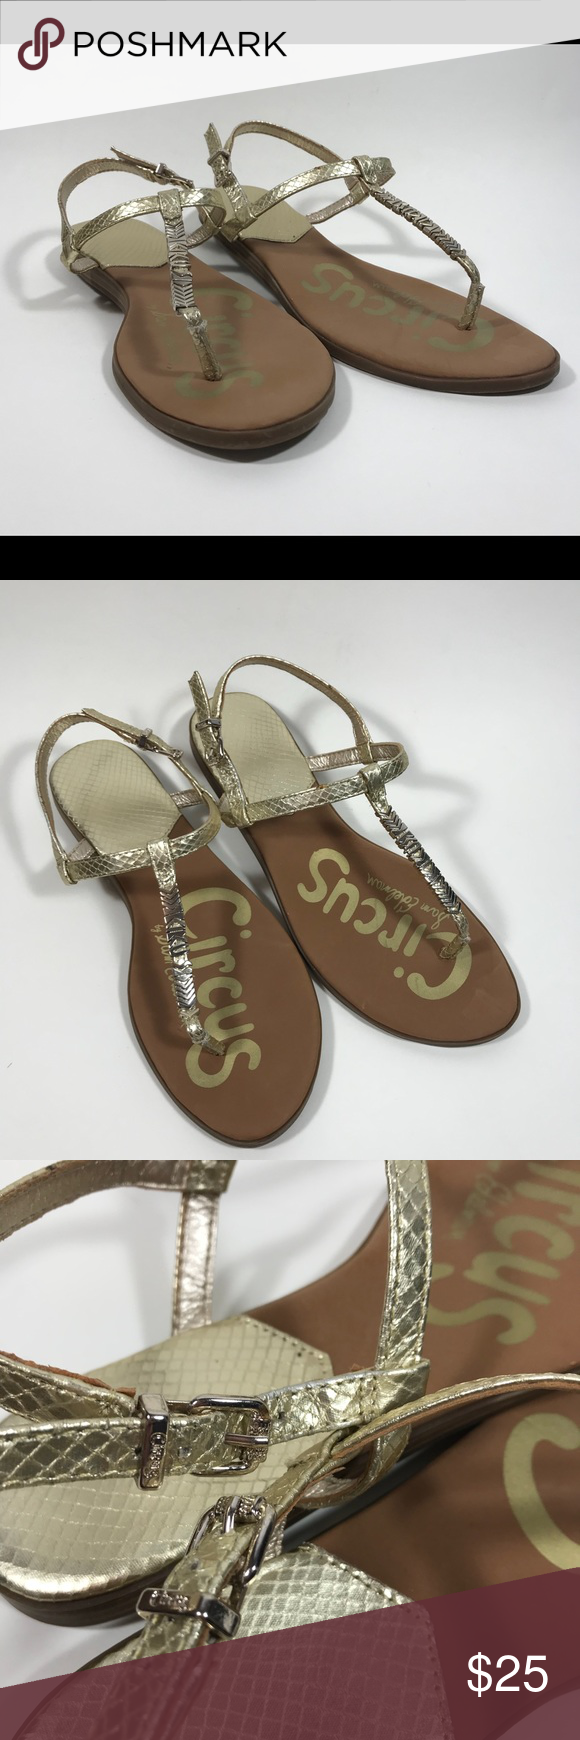 9a704f0623b32 Sam Edelman Circus Sandals Good condition~~ Flat Lay Measurements